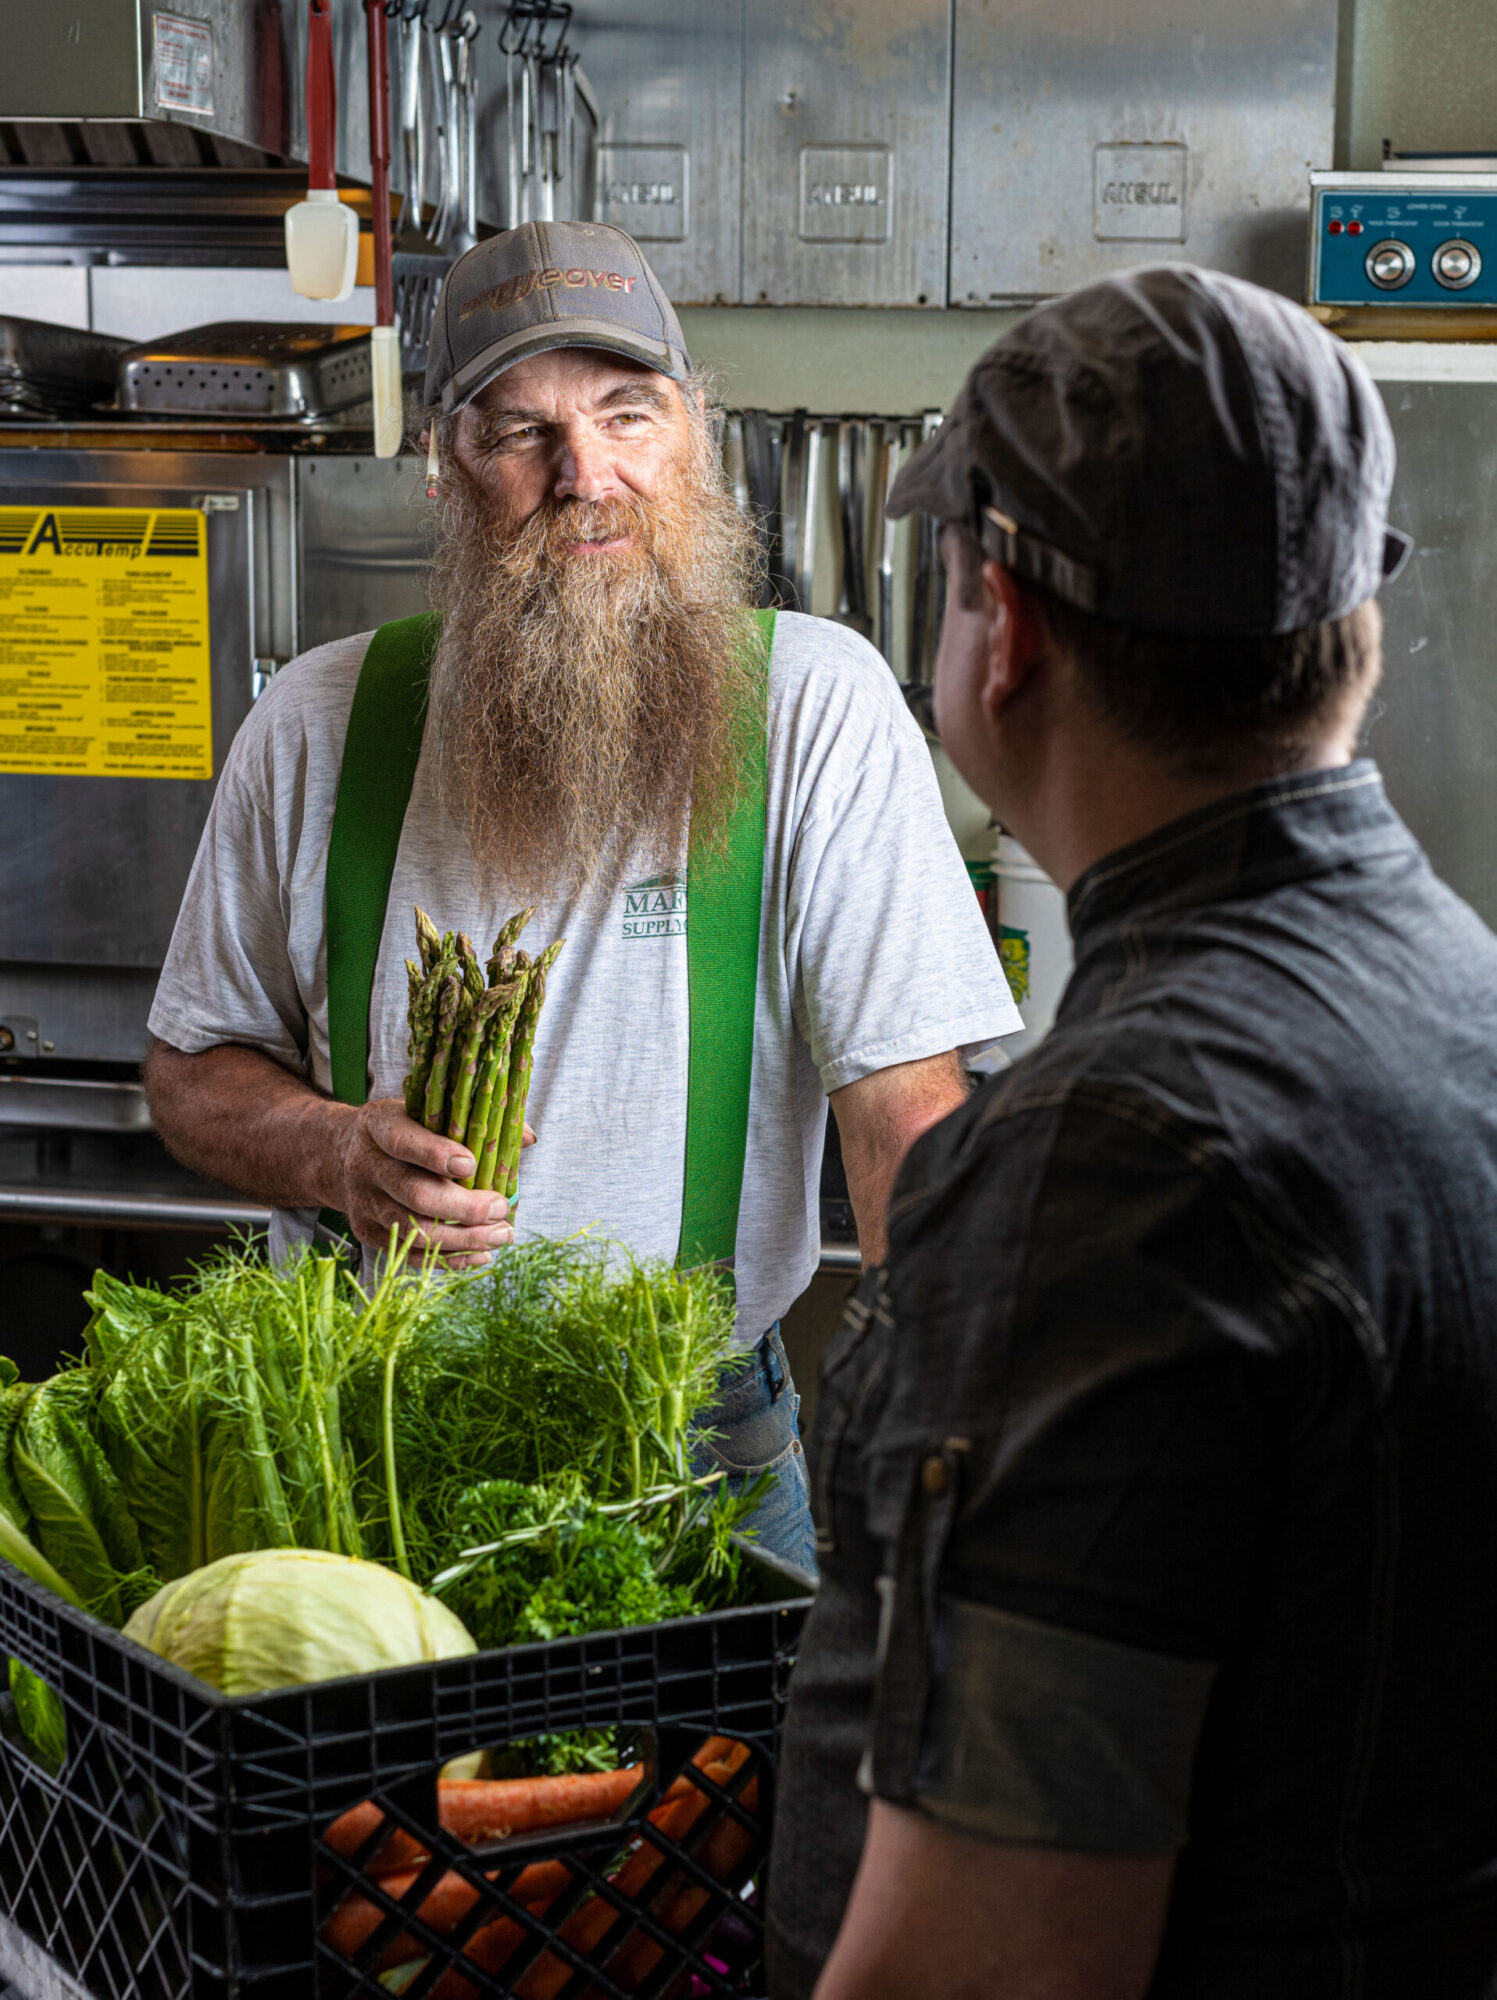 Spinnerstown buys produce from local farmers